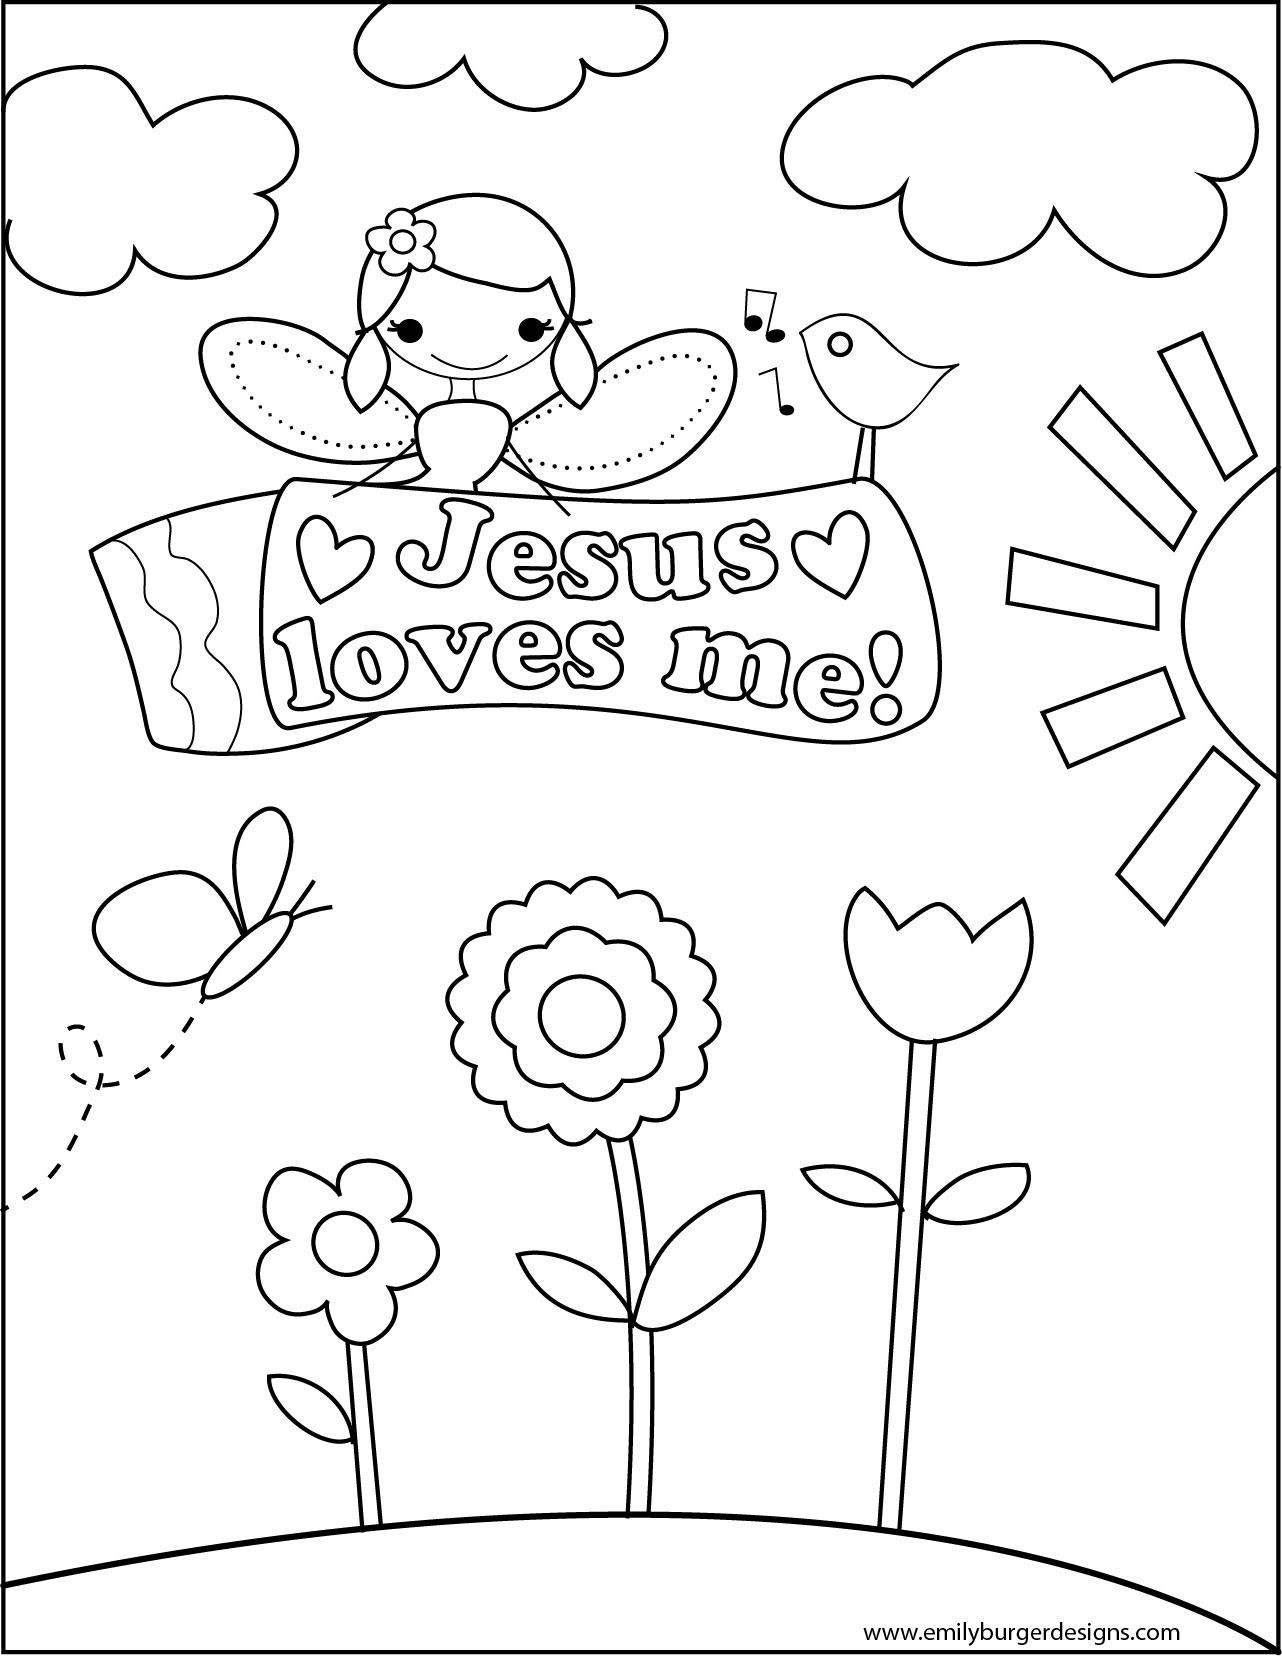 preschool jesus coloring pages jesus coloring pages images at getdrawings free download preschool jesus pages coloring